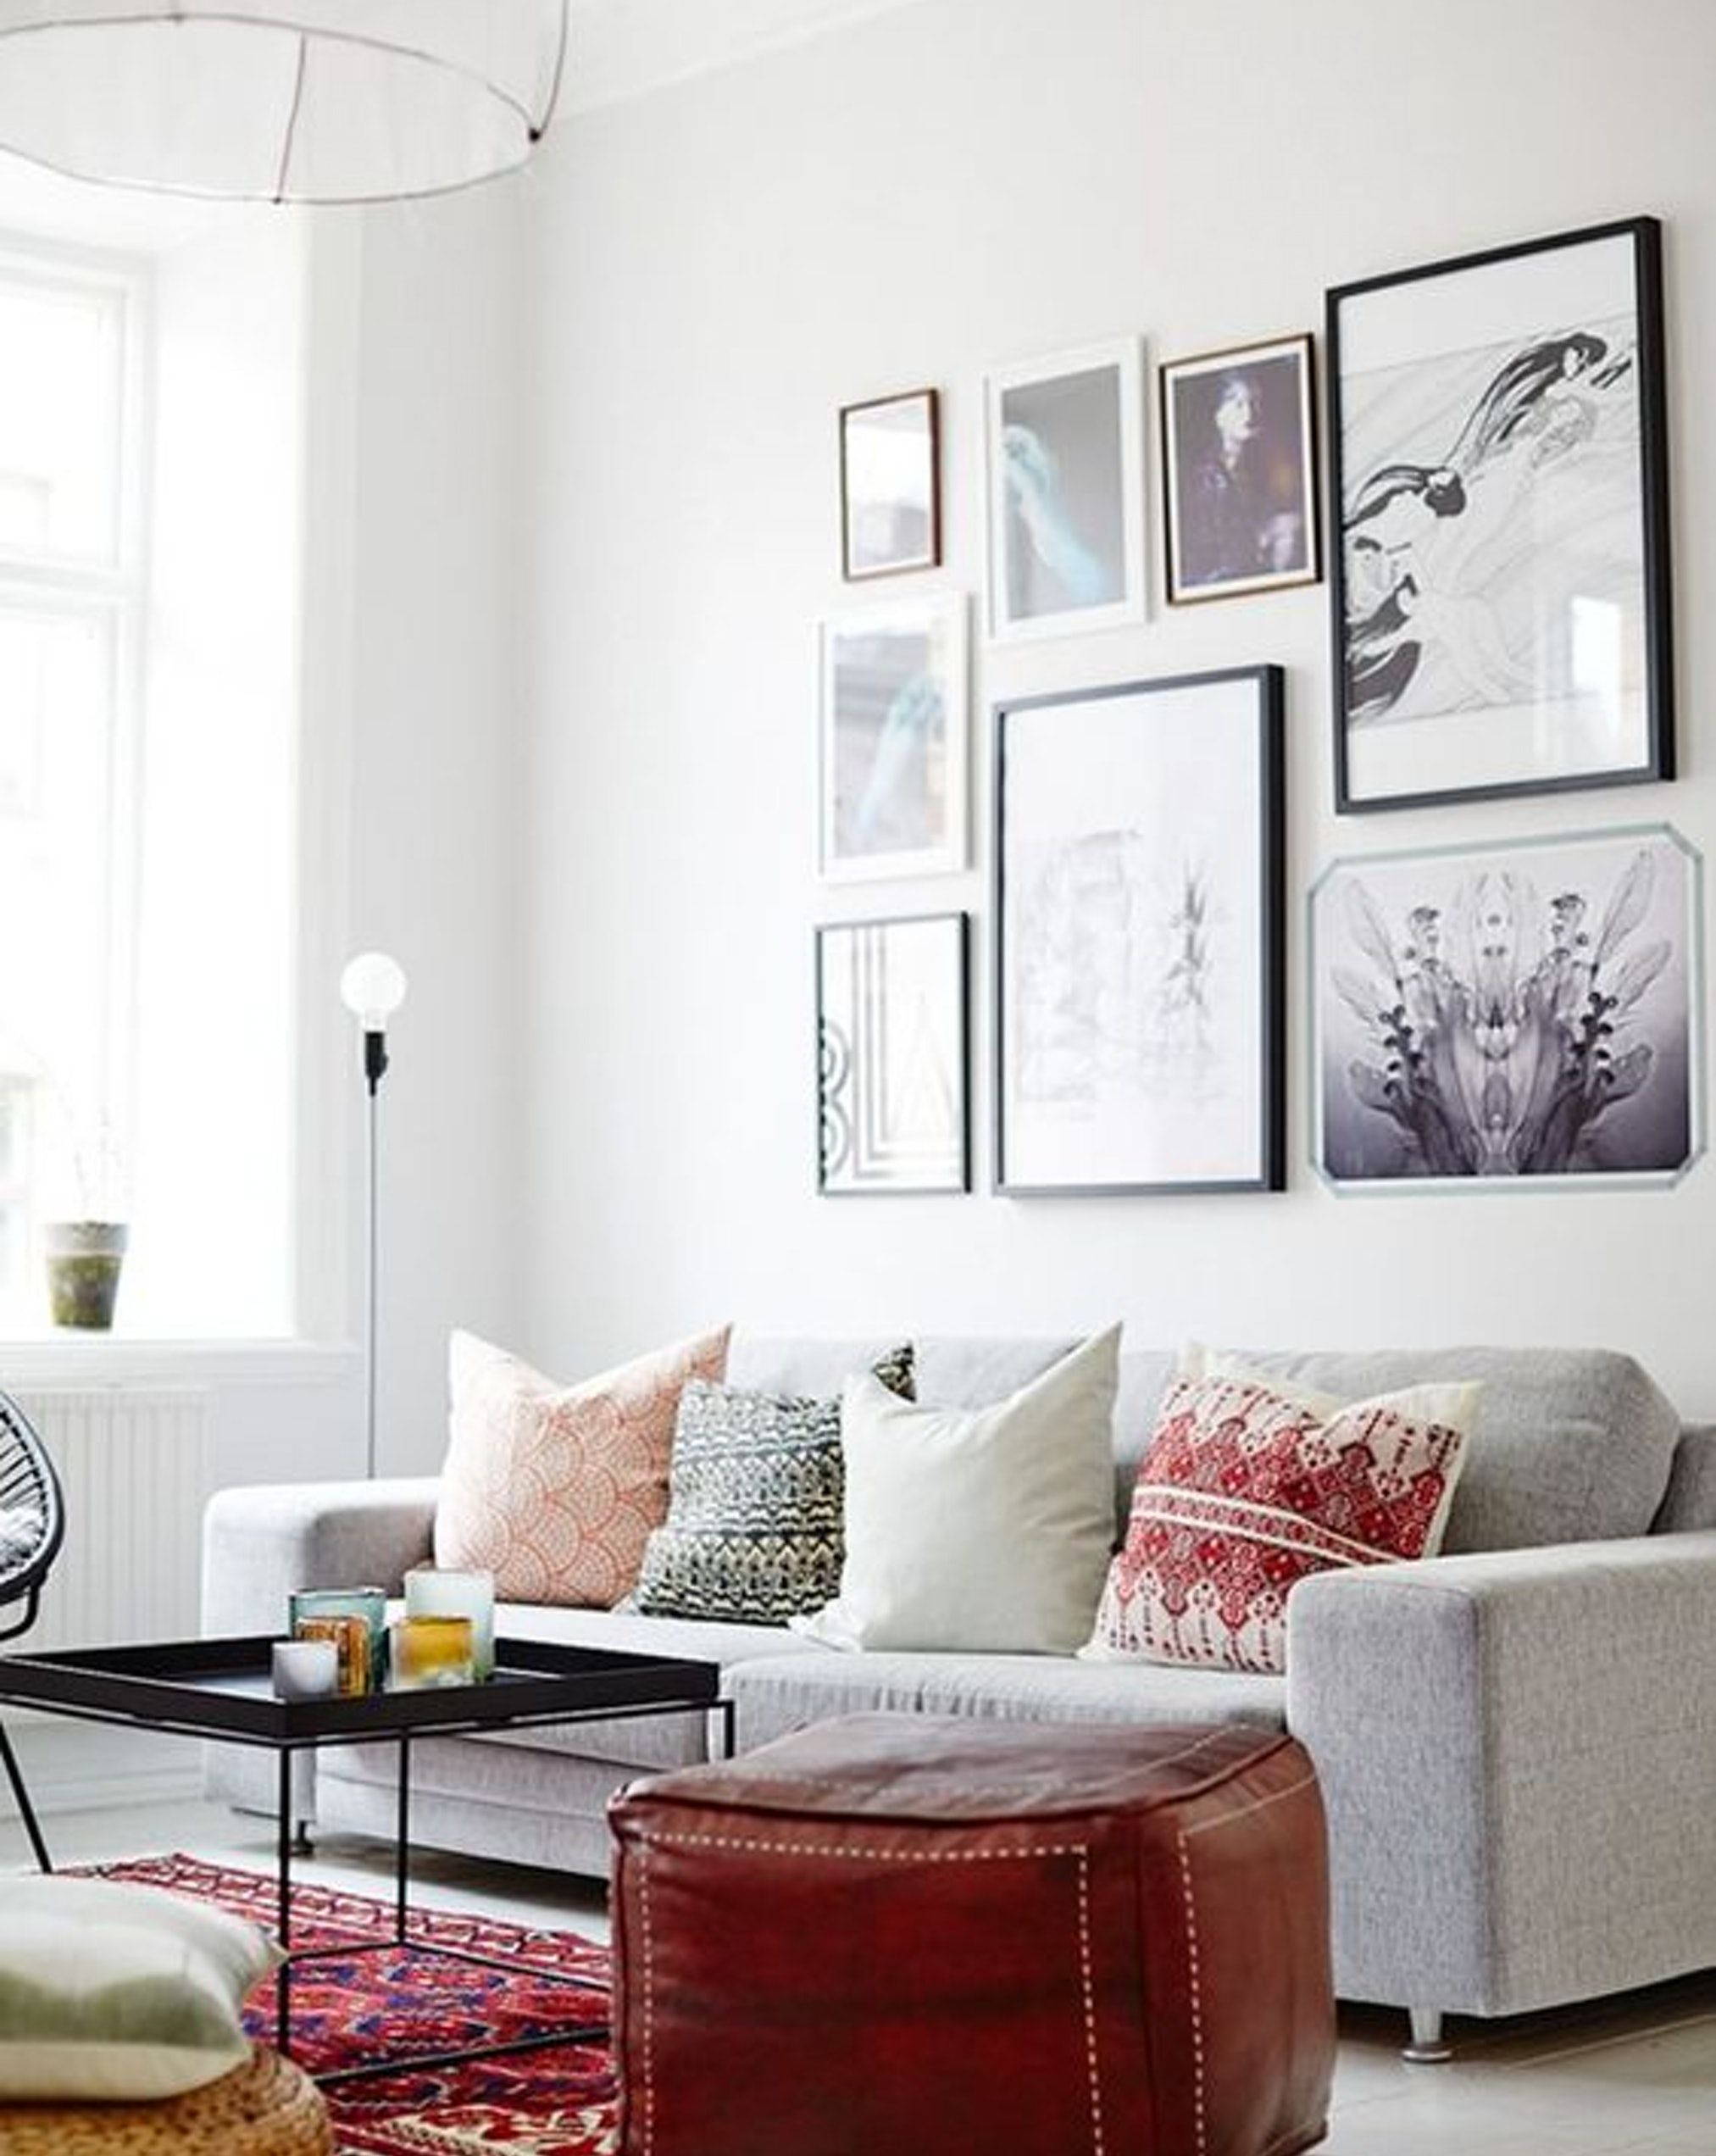 Want To Know, U201cwhat Is My Decorating Style?u201d Take Havenlyu0027s Interior Design  U0026 Decorating Quiz To Find Your Design Style So You Can Start Decorating  Your ...